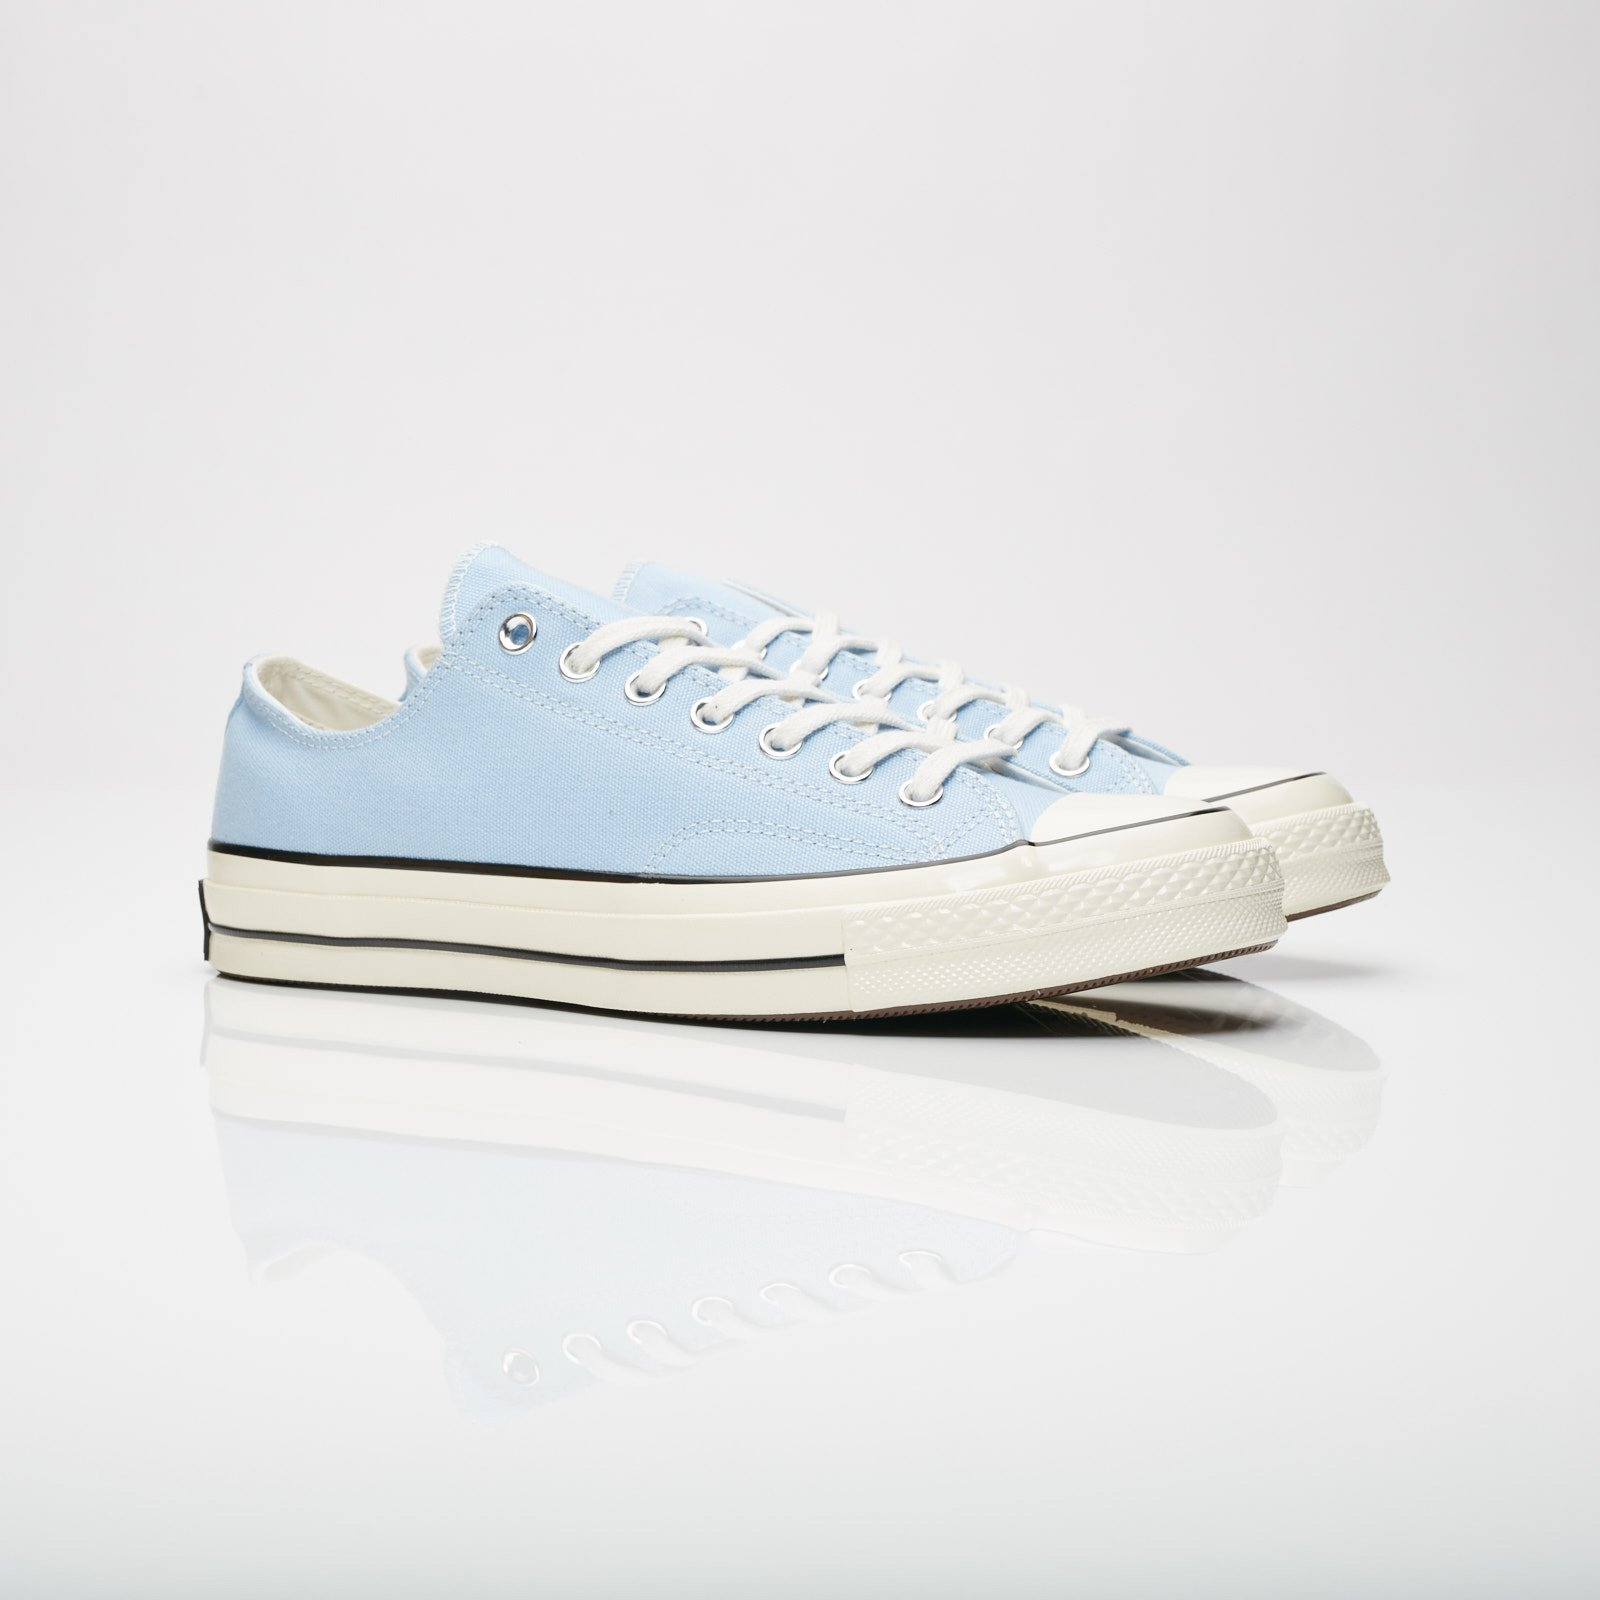 af70a820453c Converse Chuck Taylor All Star 70s Ox - 159624c - Sneakersnstuff ...